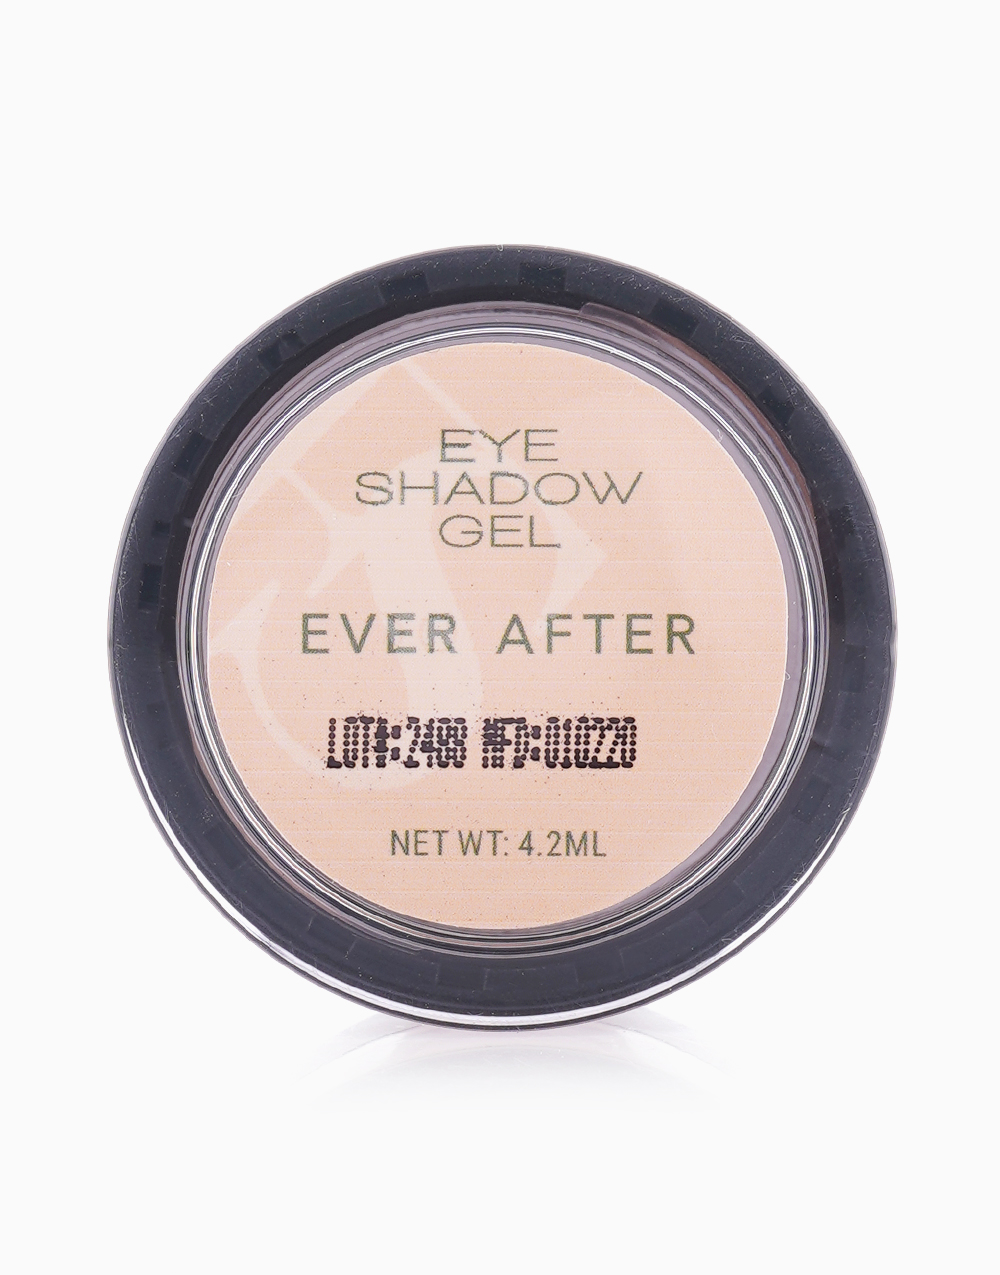 Eyeshadow Gel by FS Features & Shades | Ever After